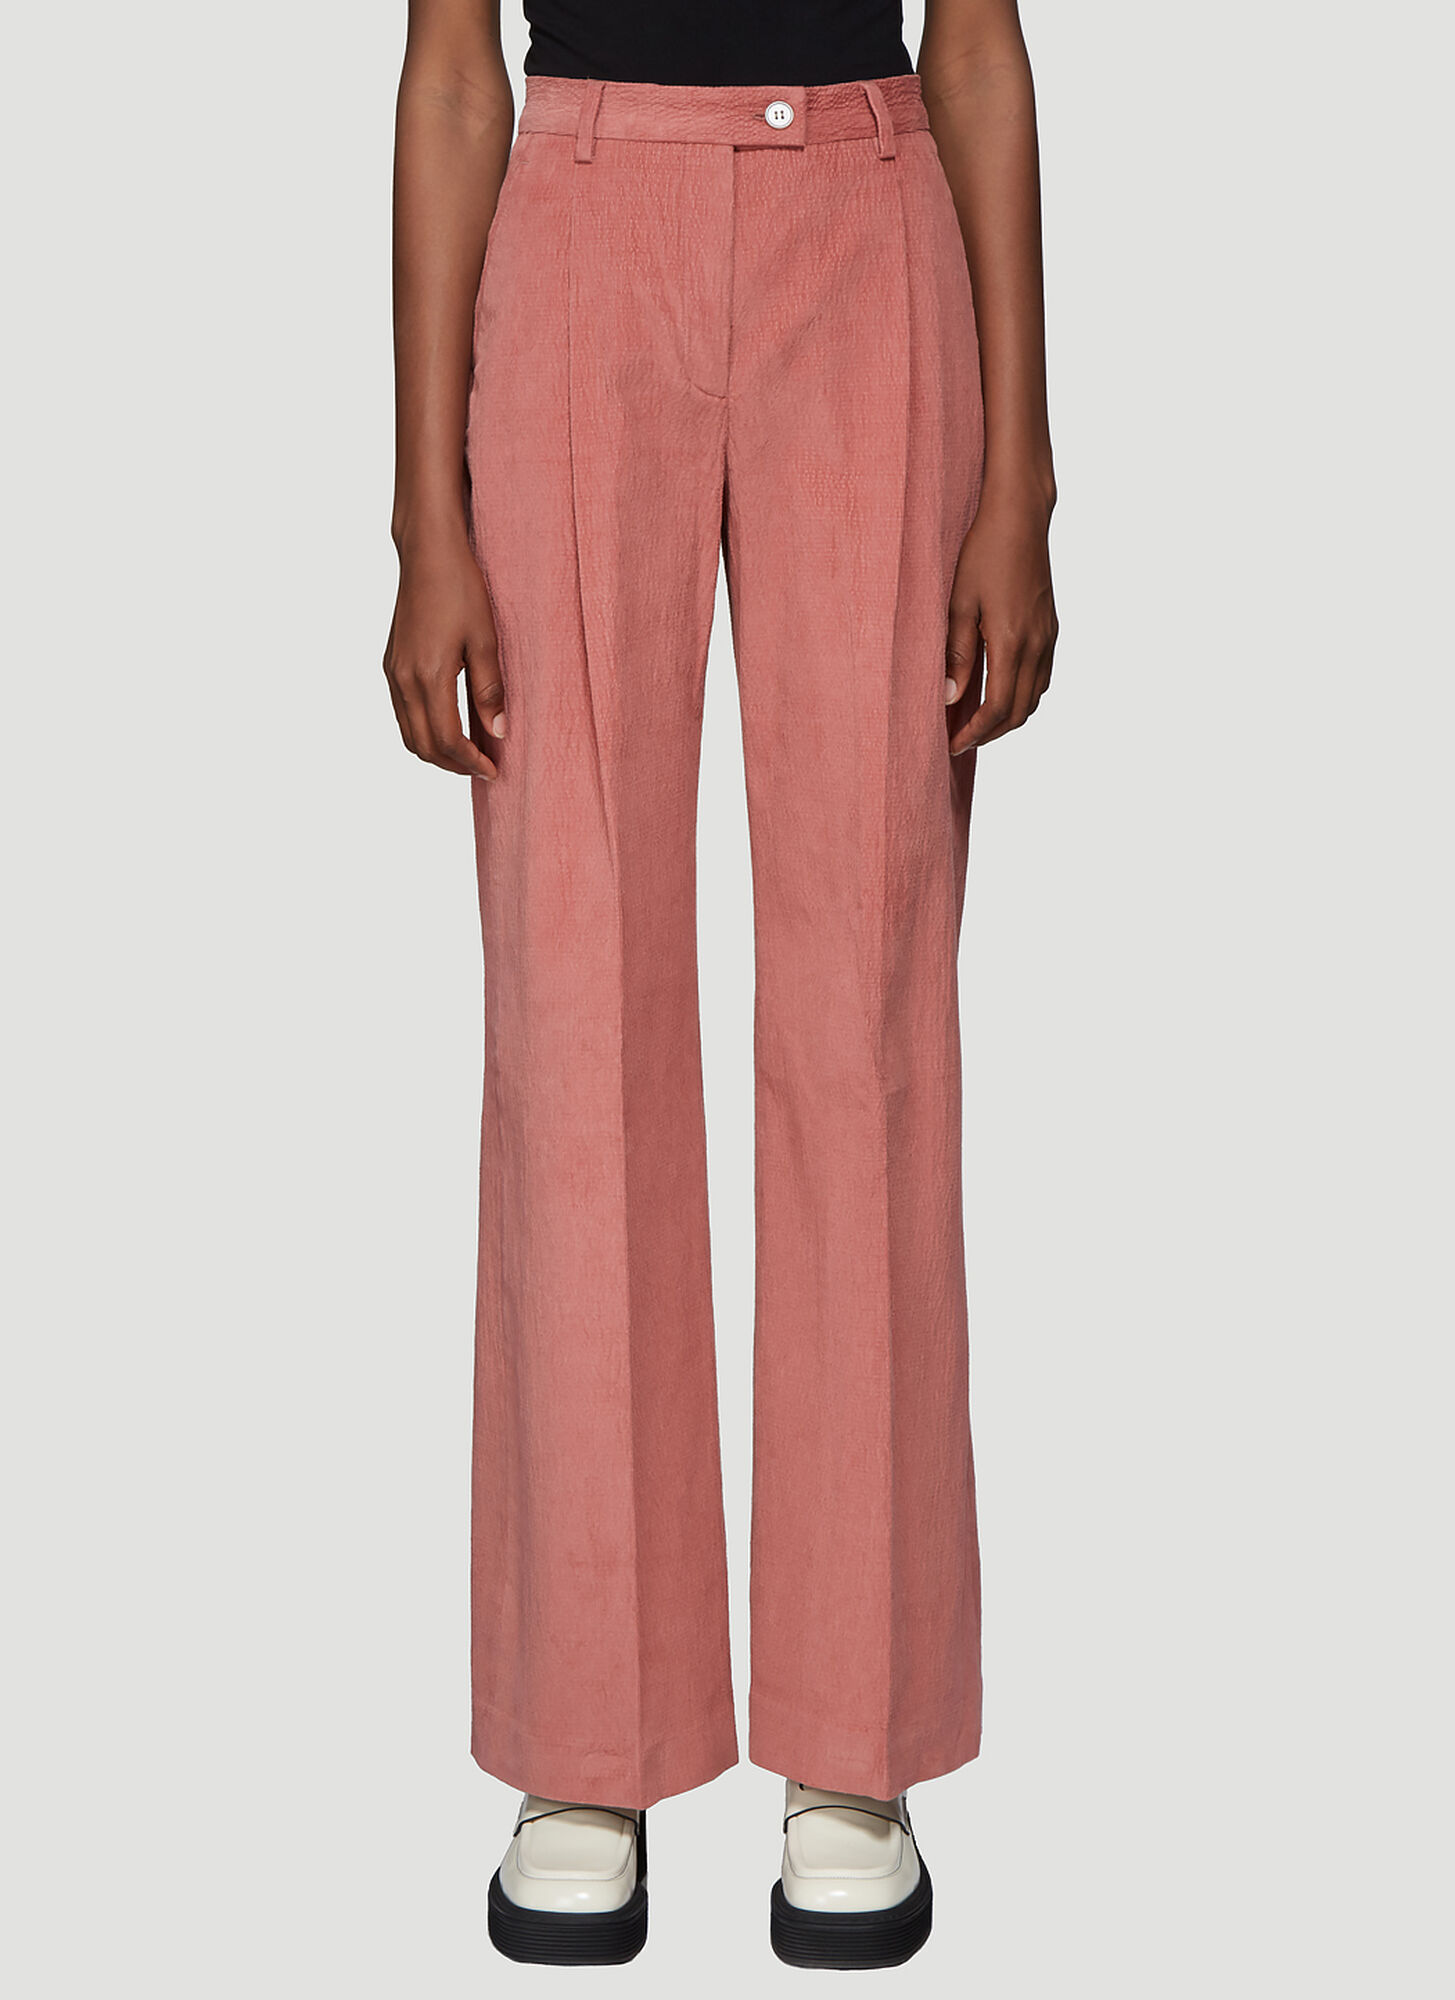 Acne Studios Pina Wide Leg Pants in Pink